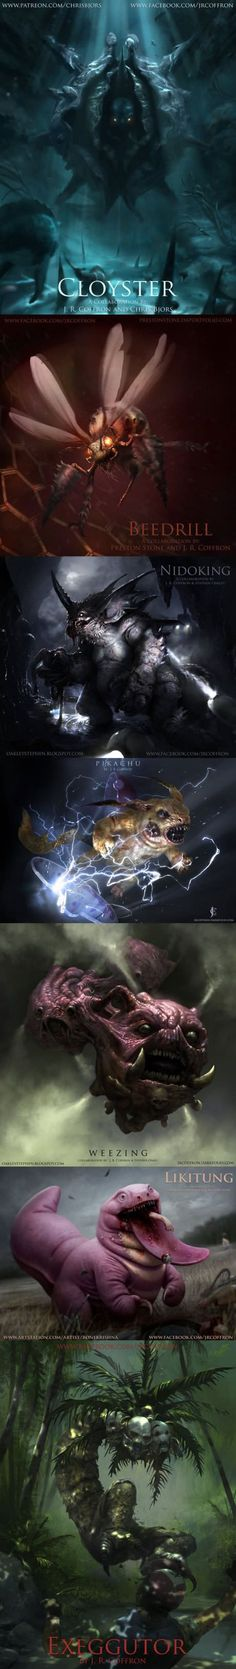 Poke Monstrosities (By JRCoffronIII) | Pokemon as they would look in real life | Pokemon Monsters Fan art | Creepy, horror, fantasy creatures | anime | Cloyster Beedrill Nidoking Pikachu Weezing Likitung Exeggutor